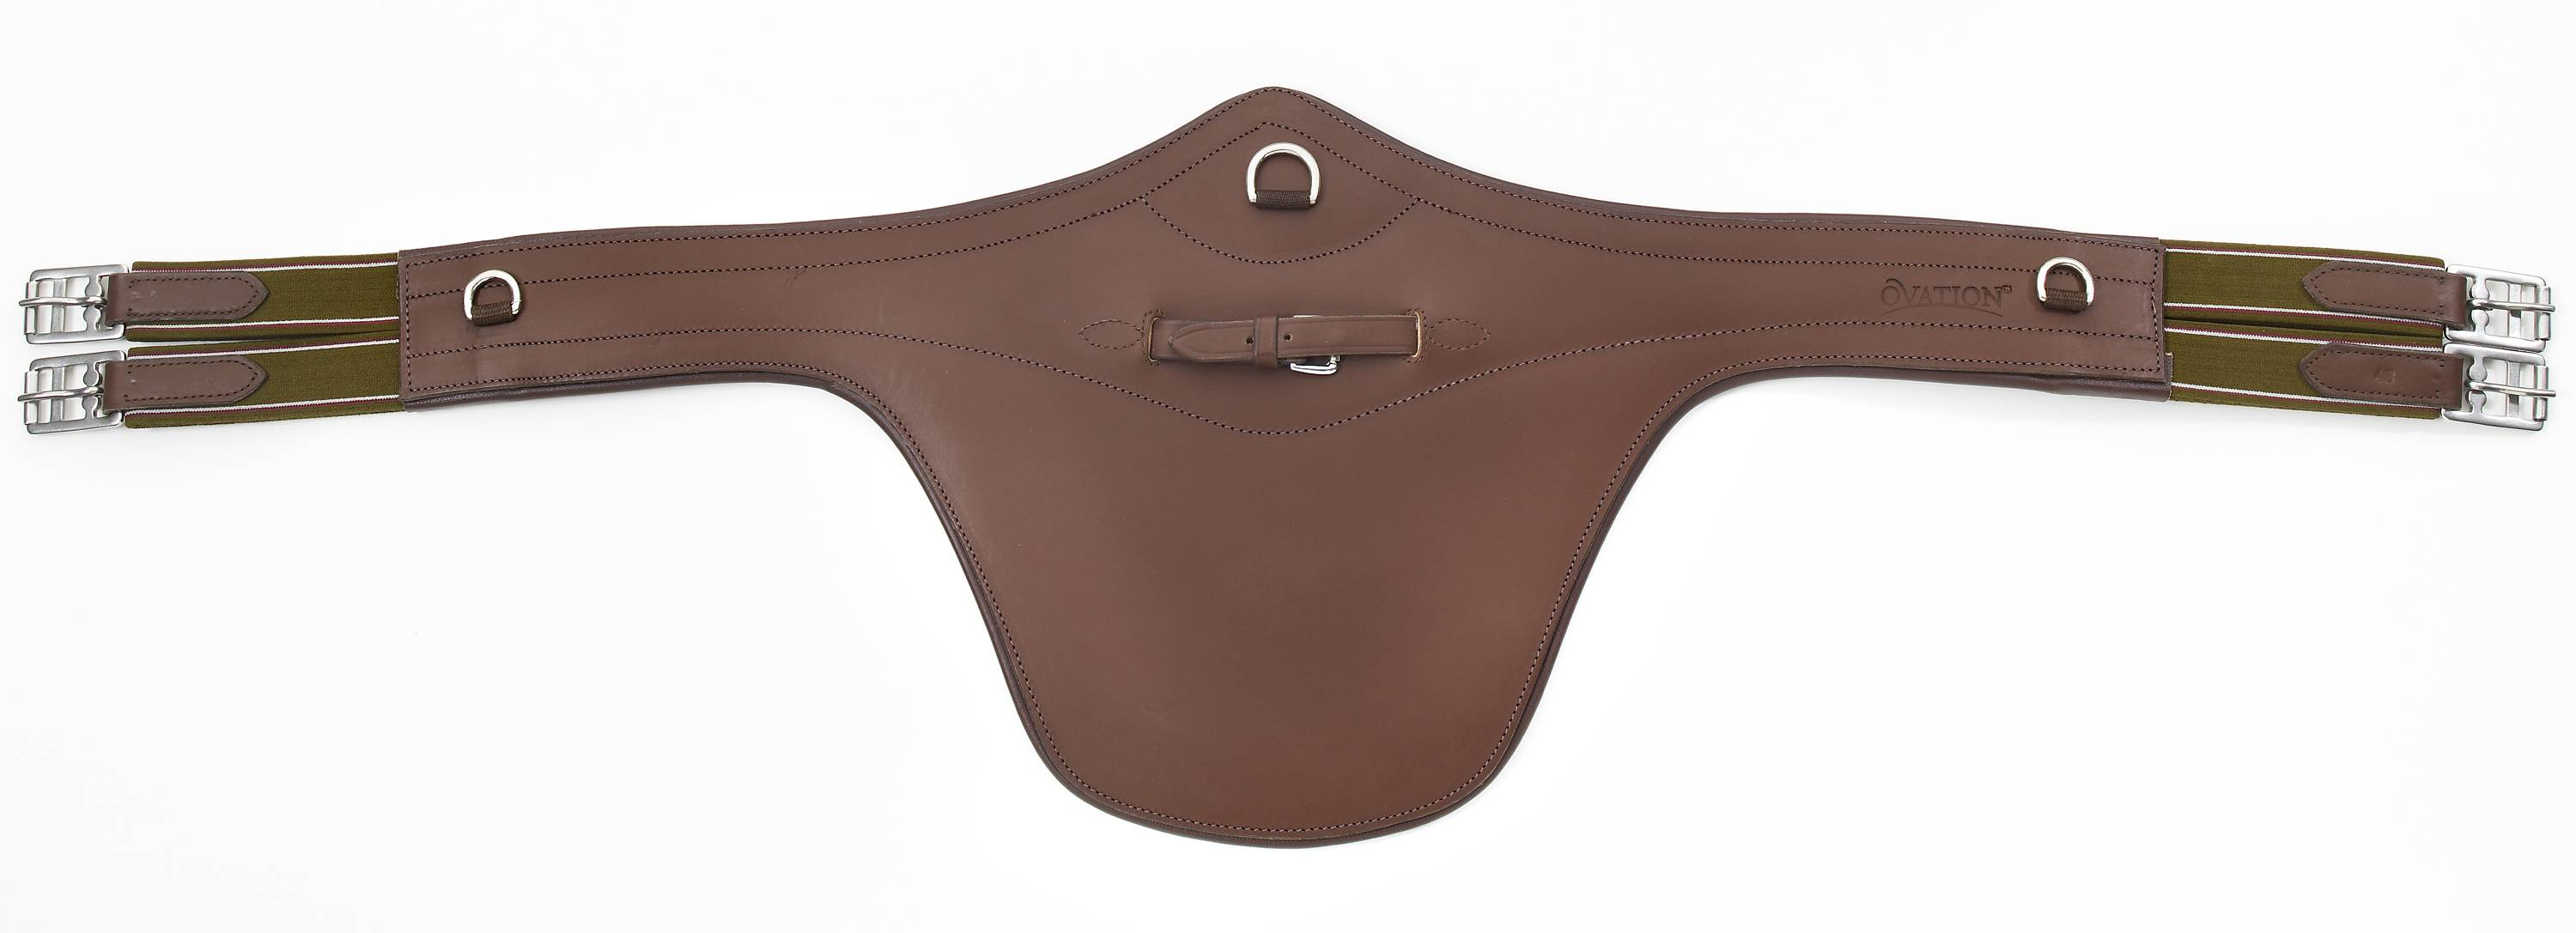 Ovation Belly Guard Girth